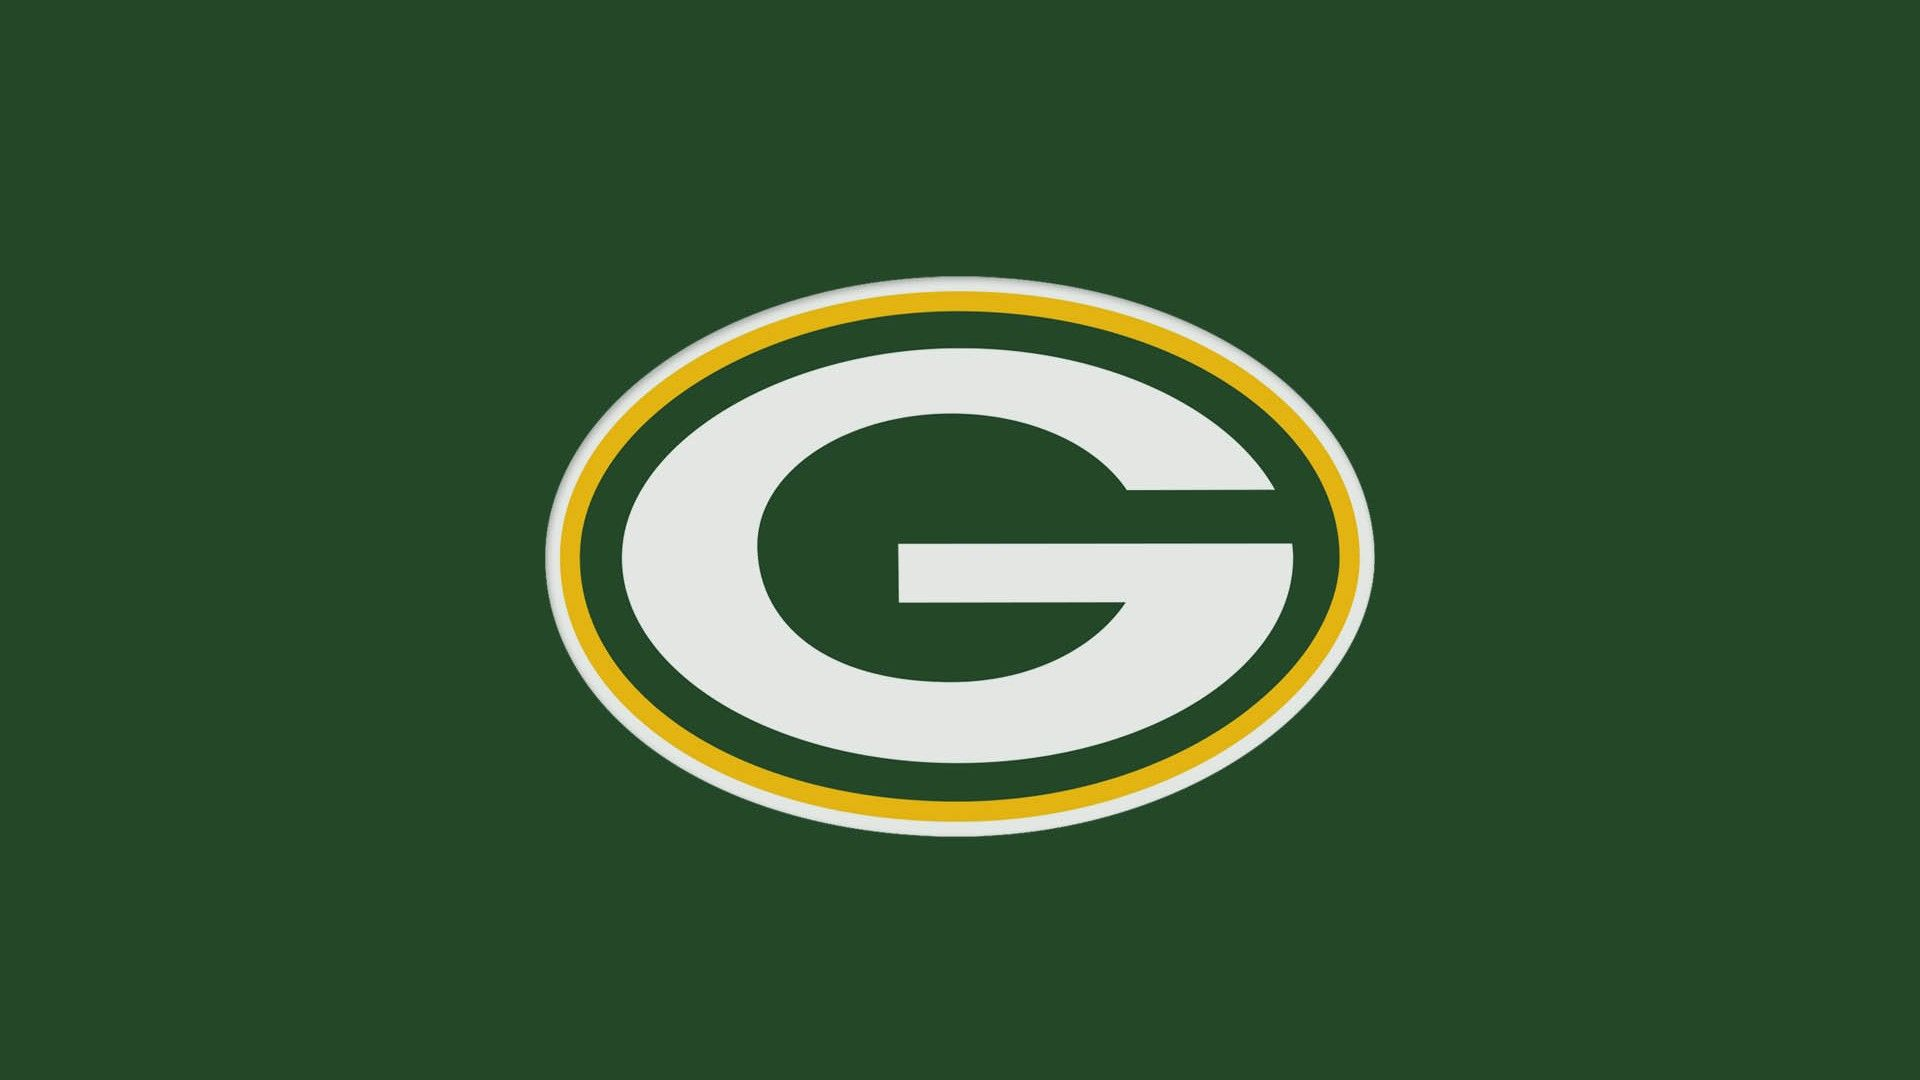 Nfl Wallpapers Nfl Wallpaper Green Bay